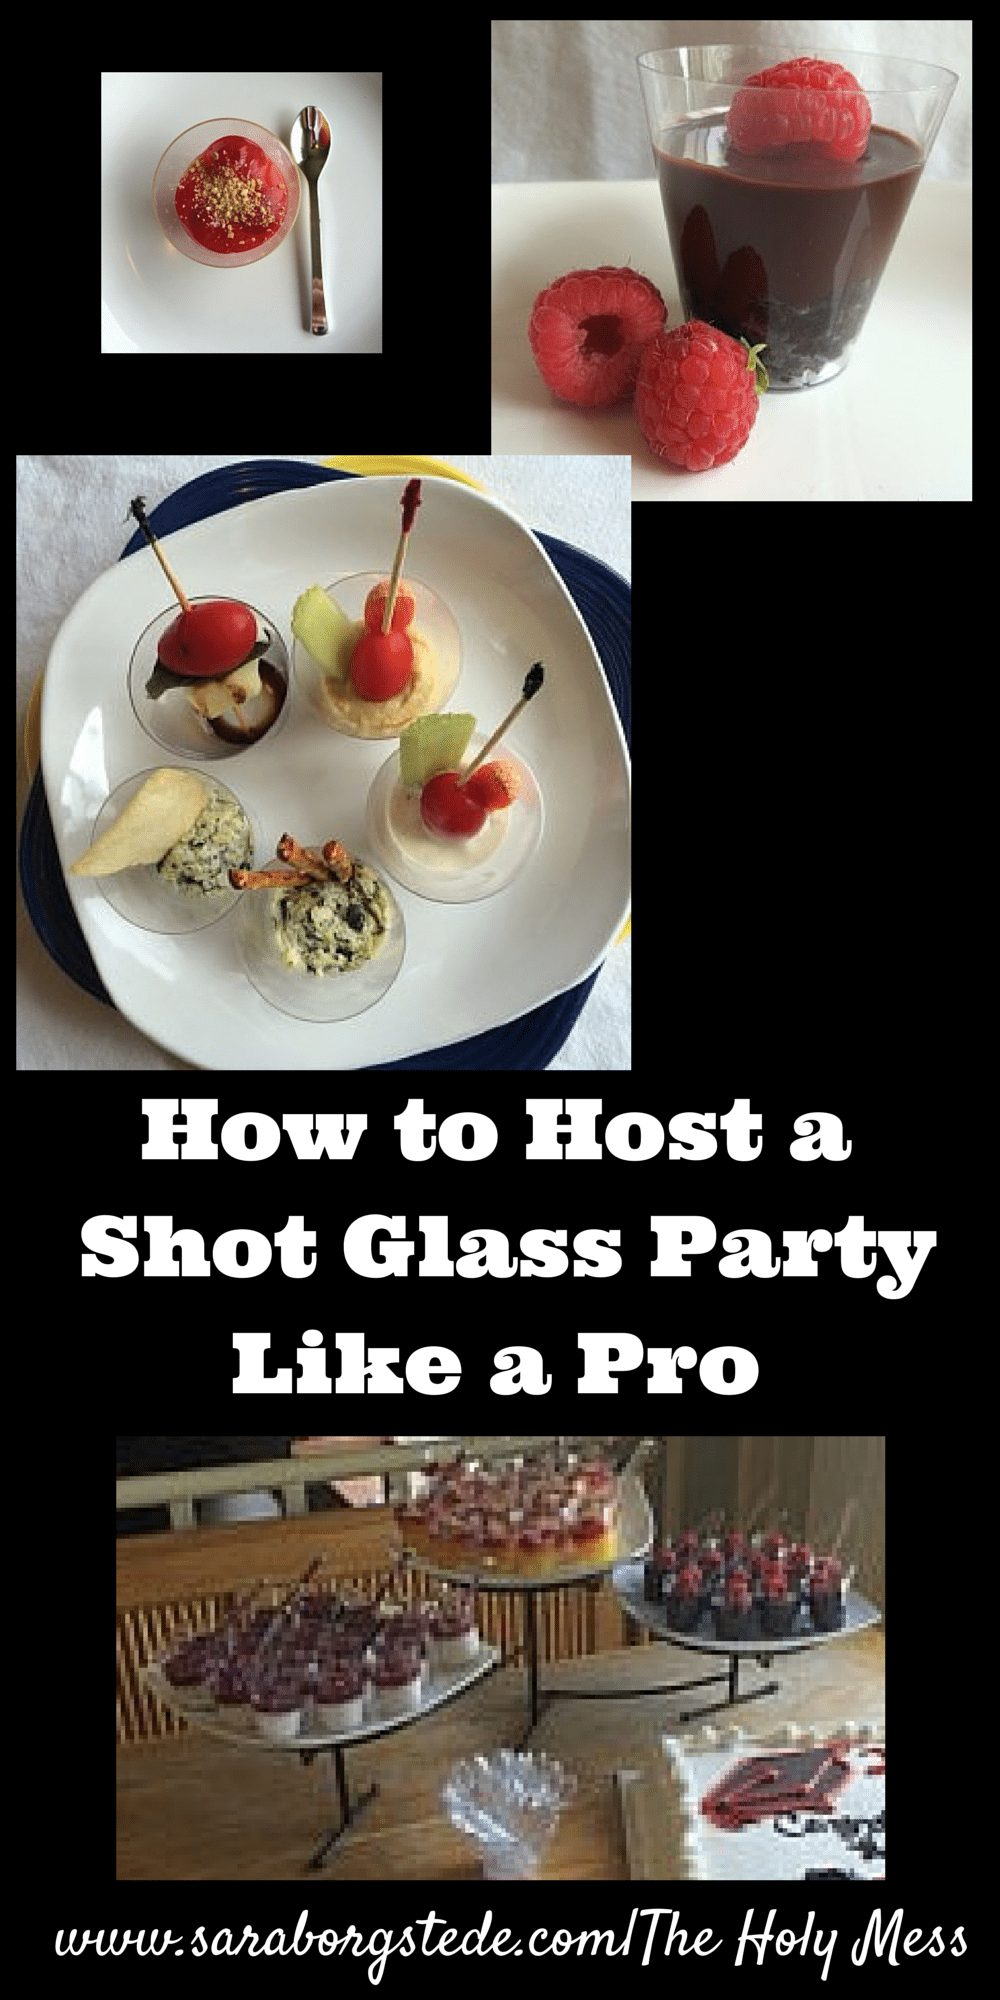 How to Host a Shot-Glass Mini-Servings Party Like a Pro - shot-glass mini-servings party